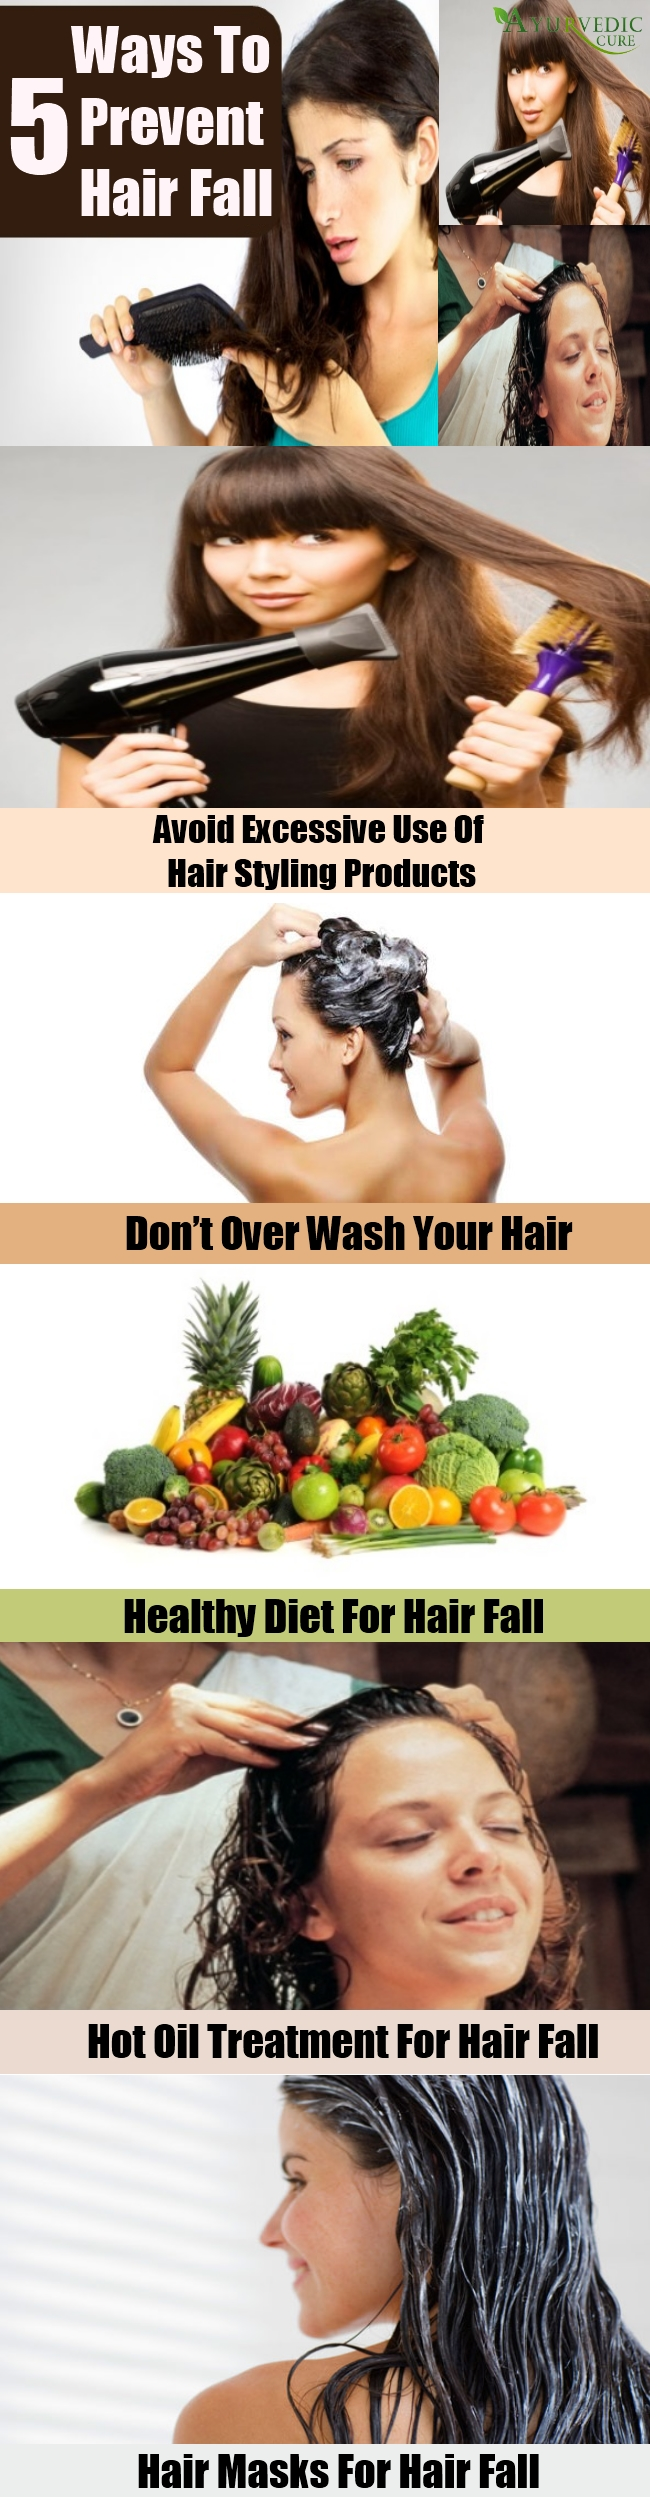 How To Prevent Hair Fall